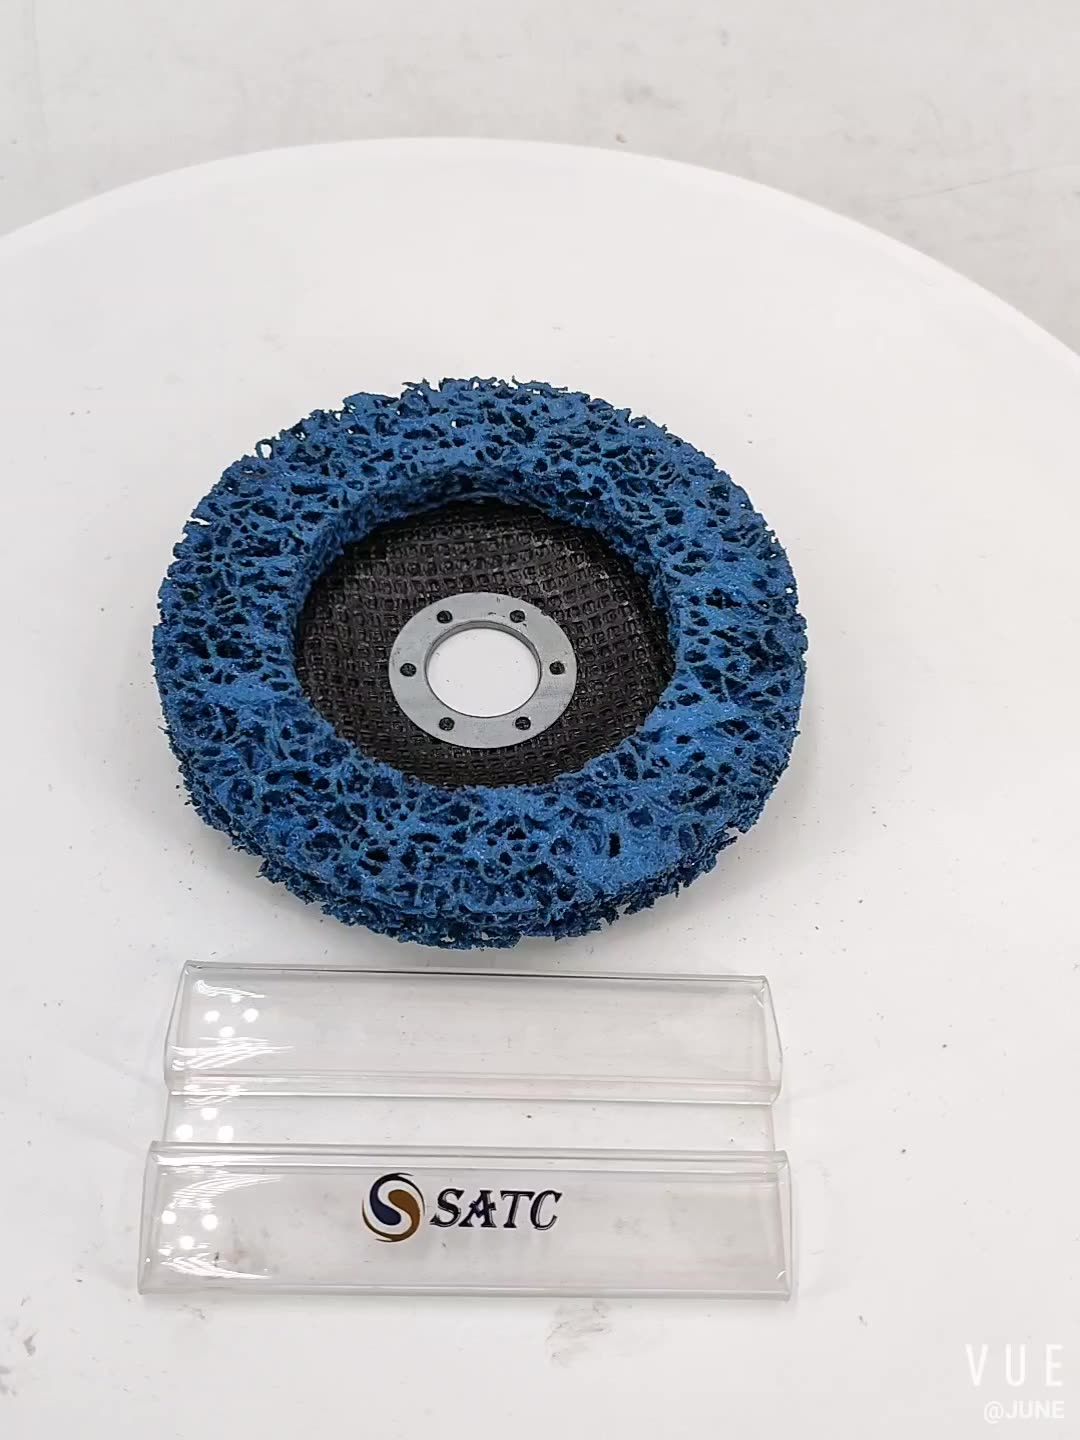 SATC Abrasive Discs 5Inch 125mm Fiberglass Backing Angle Grinder Rust Removal Quick Strip Disc for Polishing